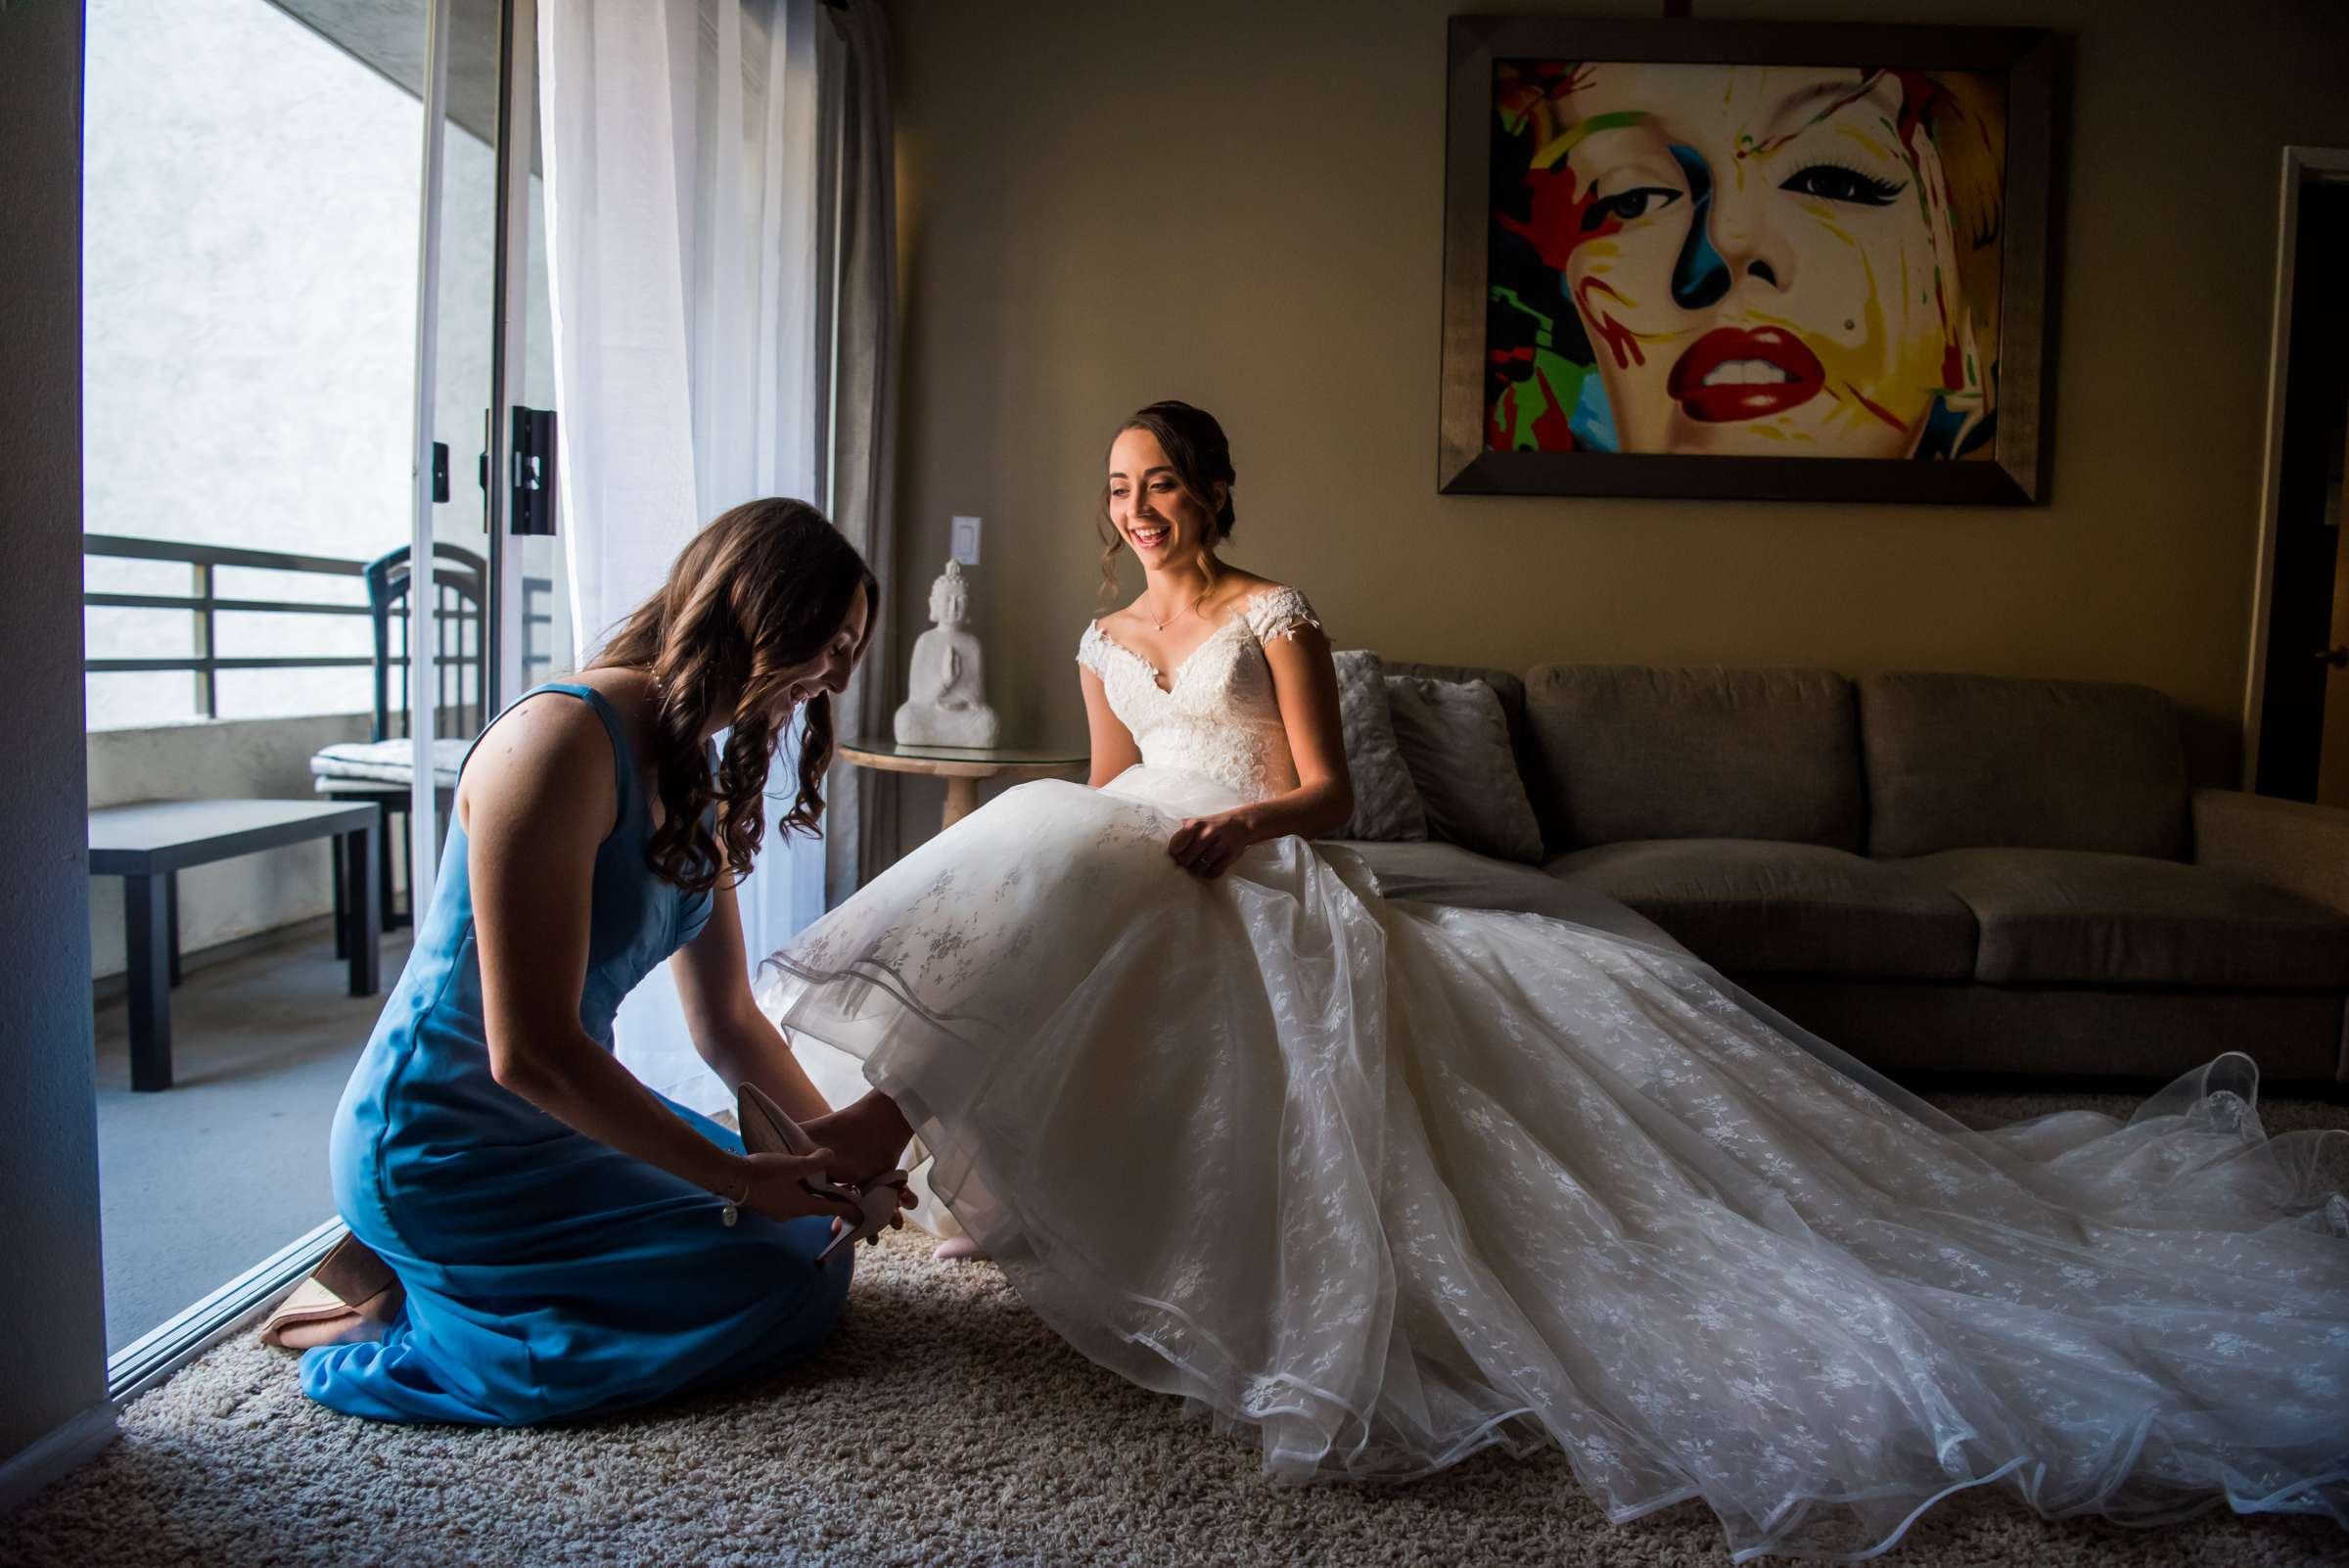 The Immaculata Wedding, Arianna and Jonah Wedding Photo #54 by True Photography